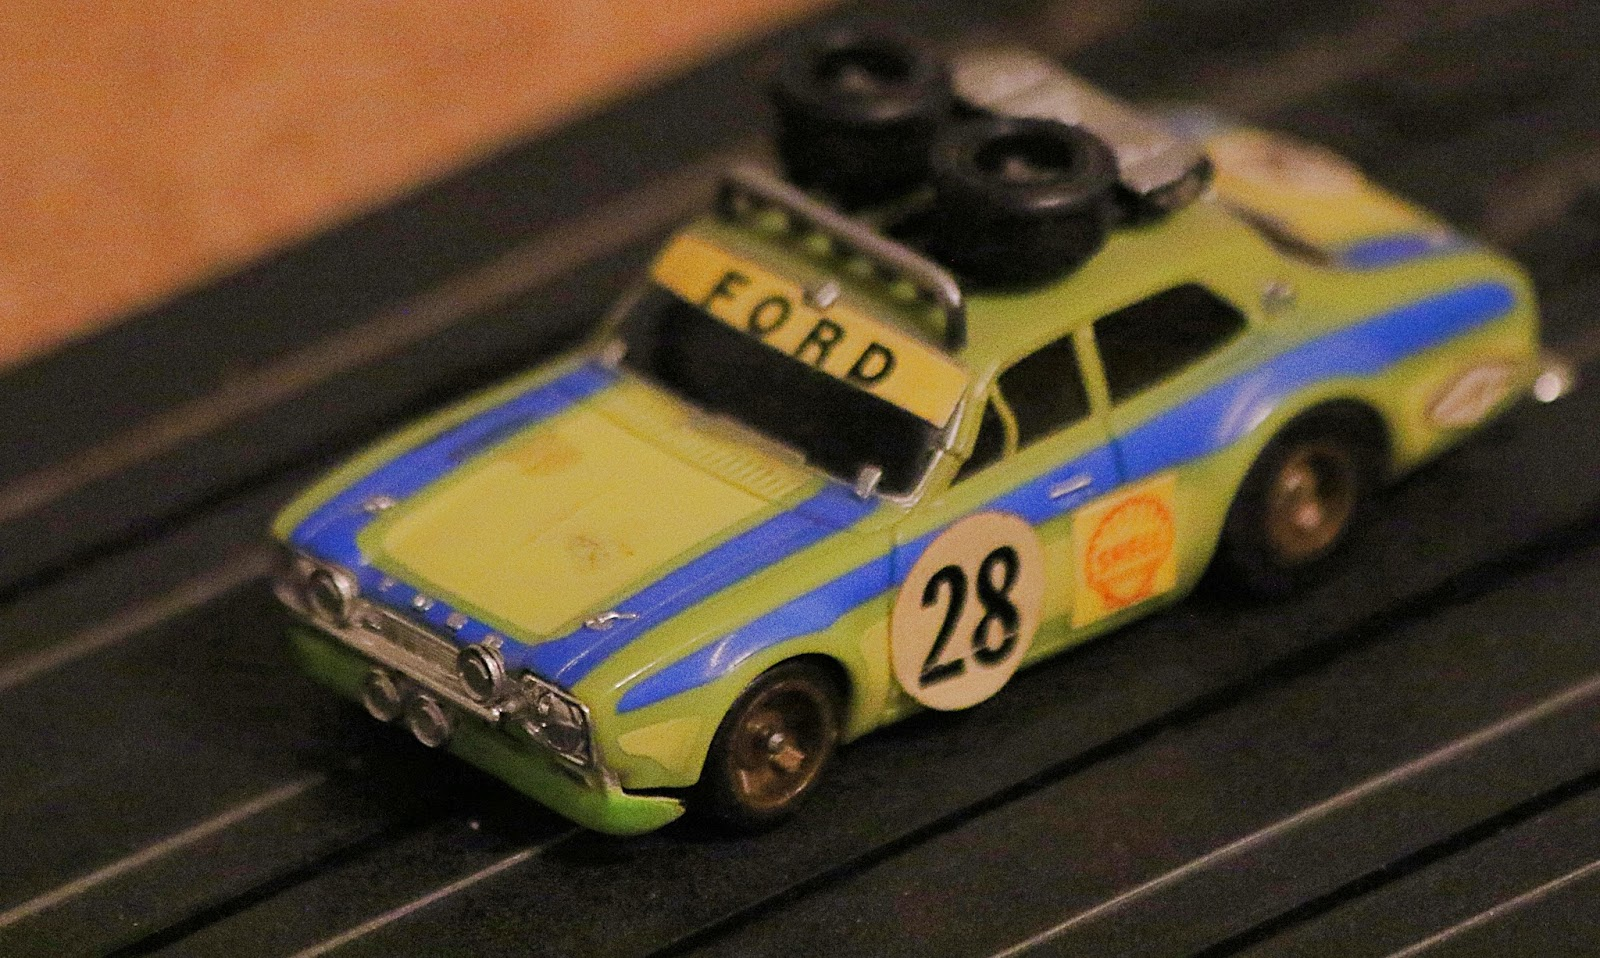 Rouen Les Afx 64 Memories Of Ho Scale English National Slot Car Racing Life Like Rokar Chassis Repair Parts And Diagrams Very Unusual Group C Winner